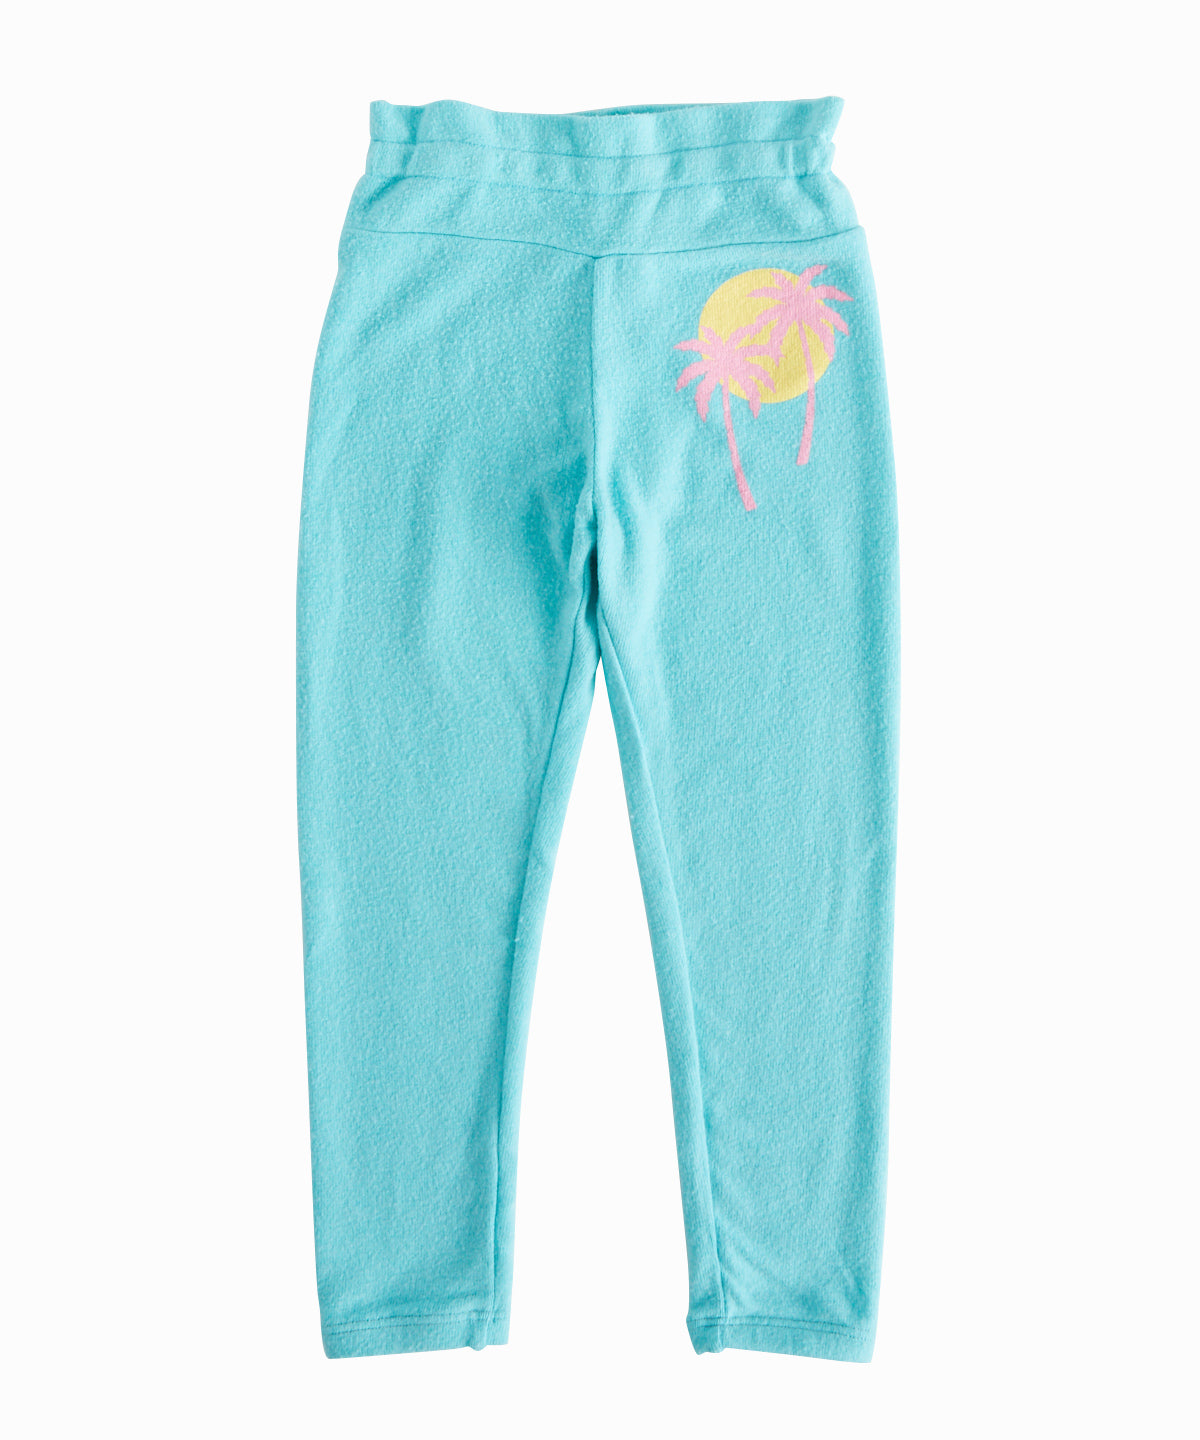 Malibu Sun Sweatpants